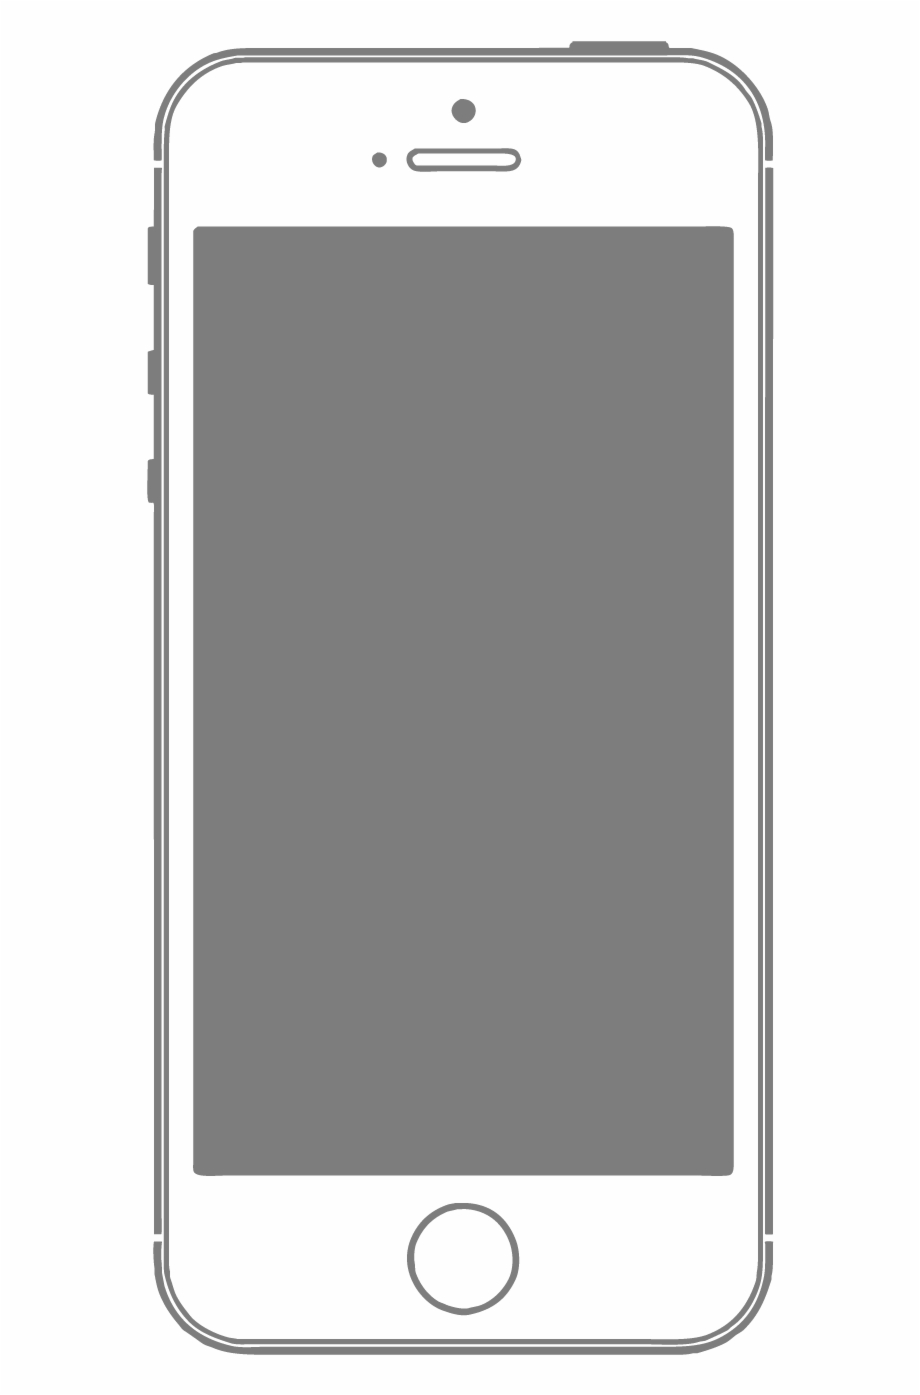 Phone Frame Png.